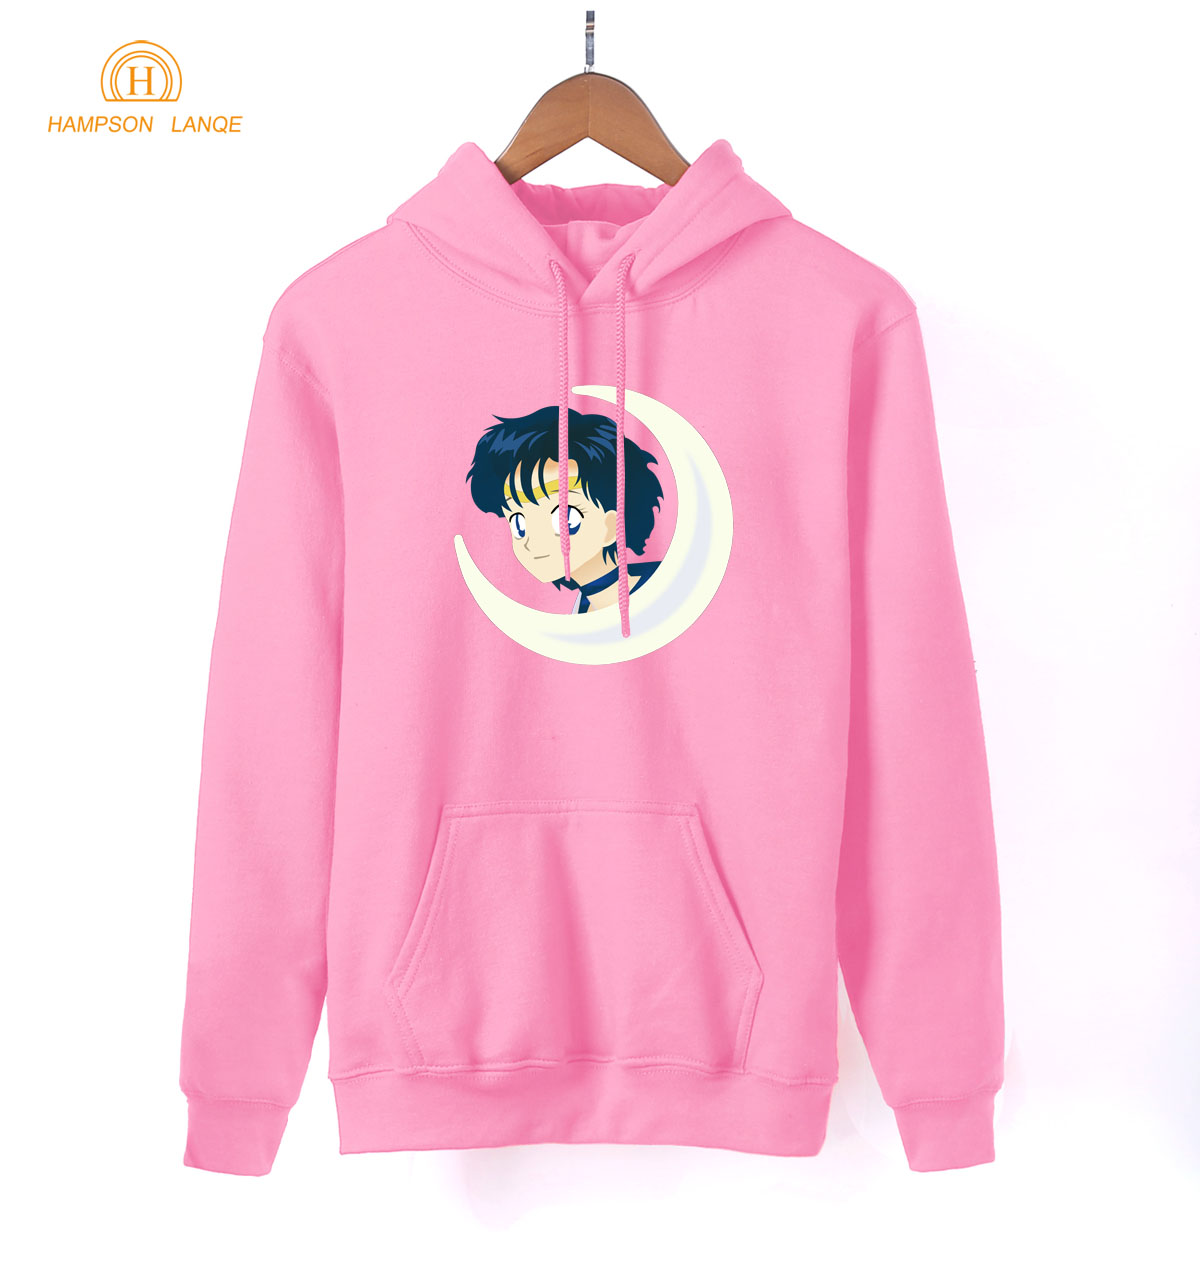 Japan Anime Kawaii Sailor Moon Pink Hoodies For Girls 2019 Hot Spring Autumn Cute Sweatshirts For Lady Women